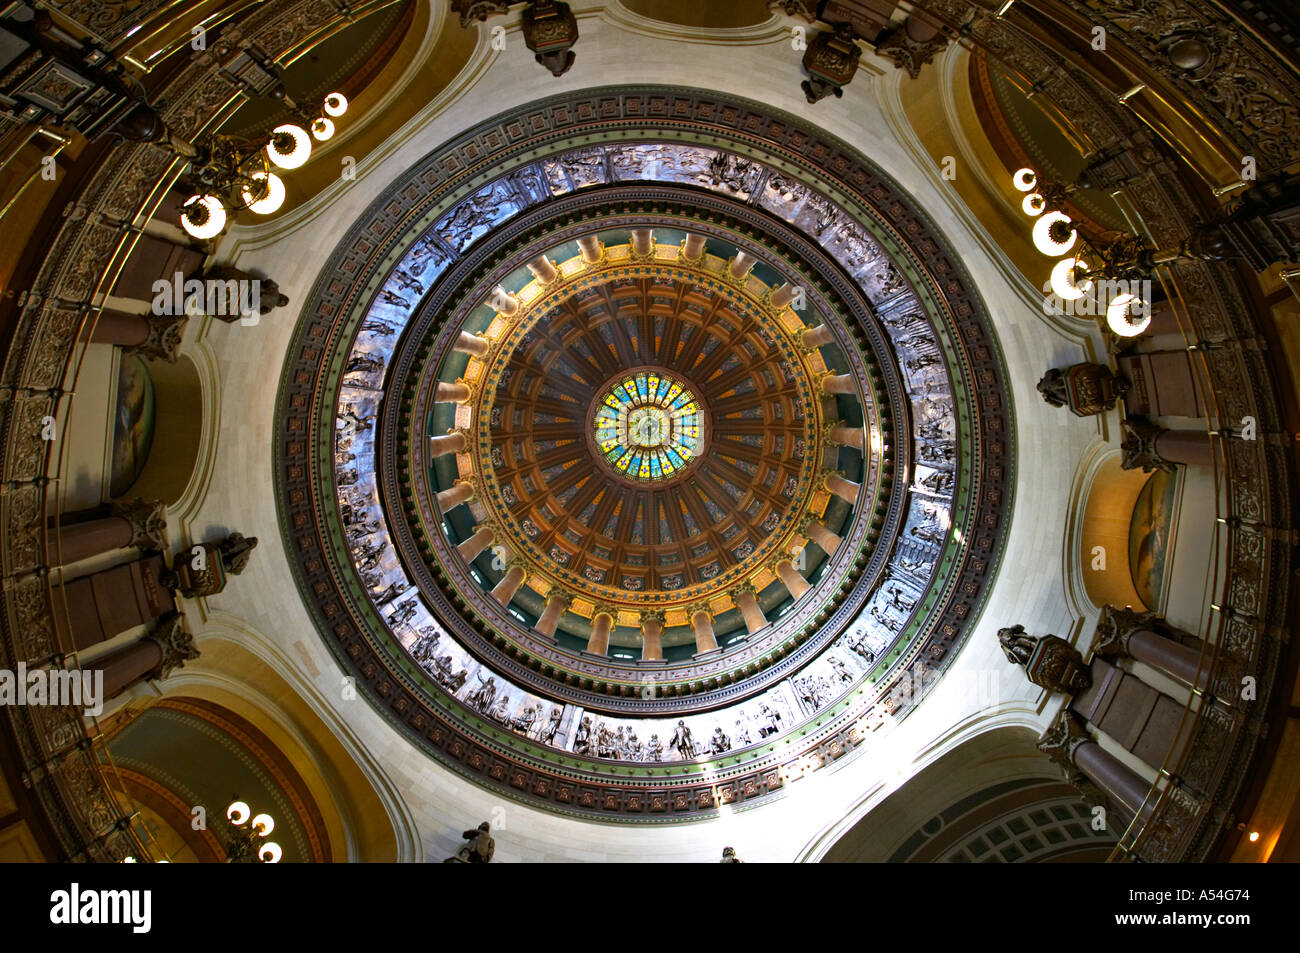 ILLINOIS Springfield Interior of State Capitol building dome stained glass ornate decorative details  - Stock Image